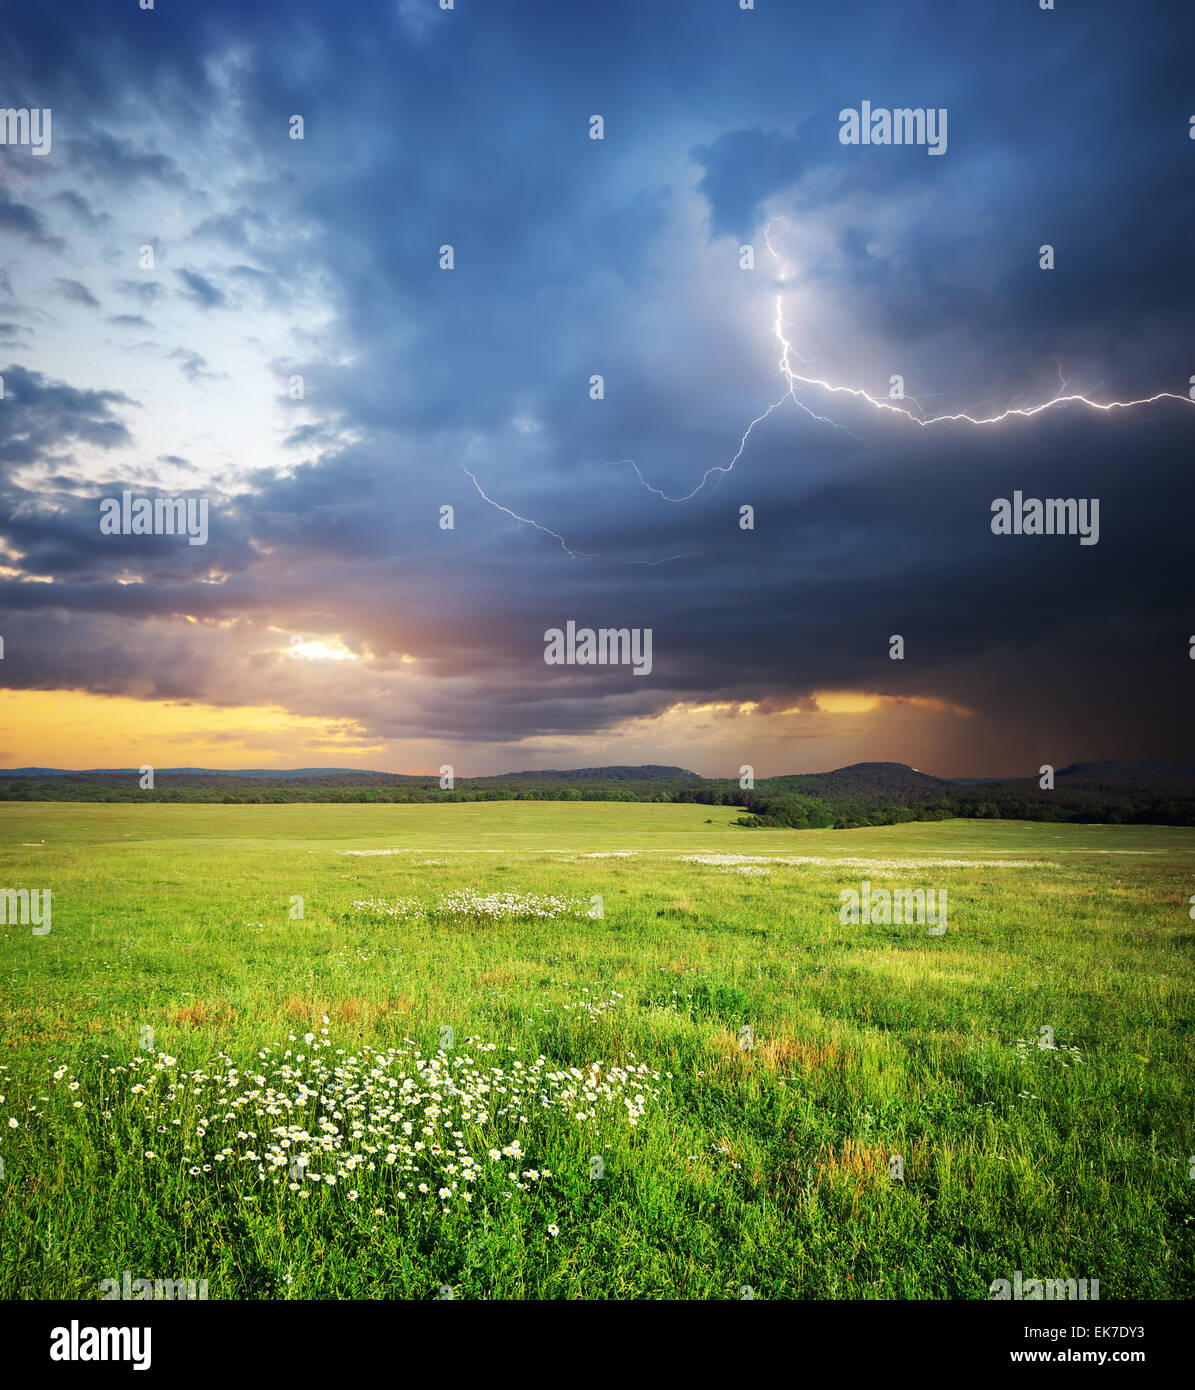 Meadow in mountain. Rain cloud and lightning. Nature composition. - Stock Image